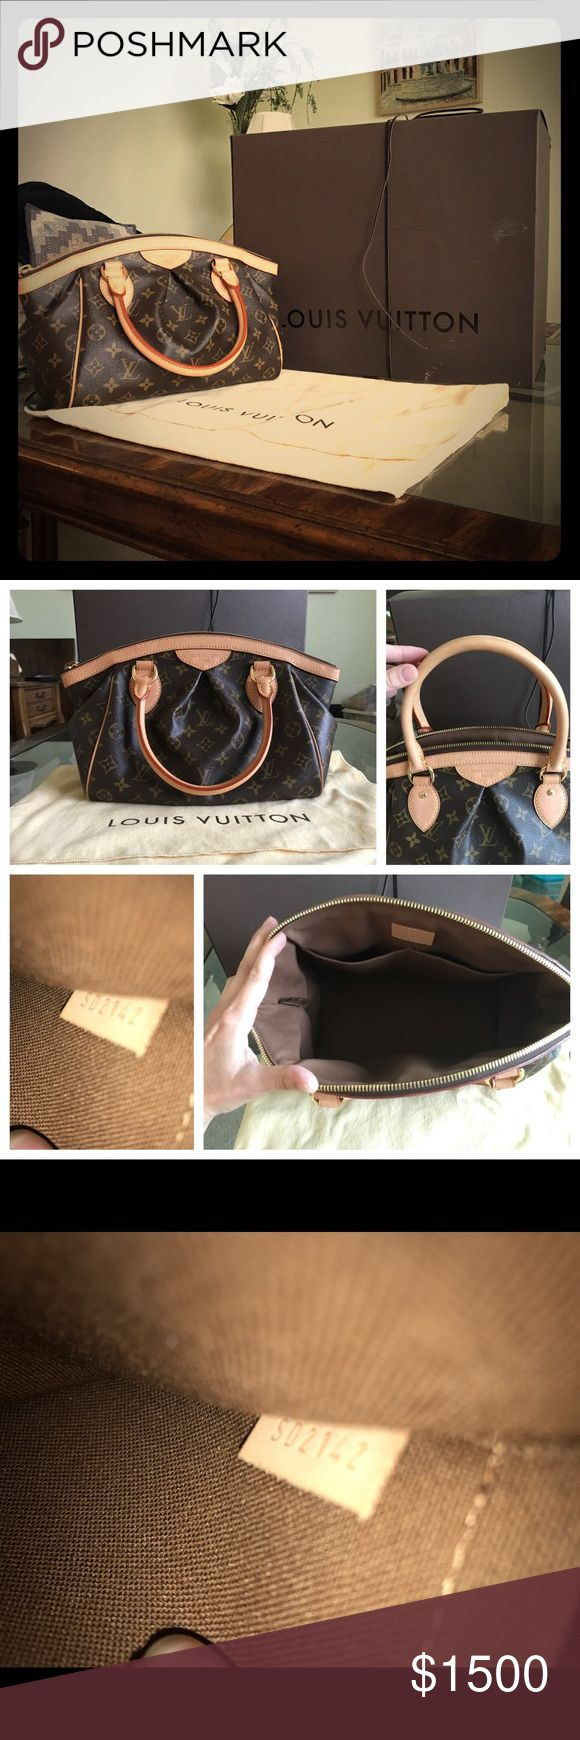 Louis Vuitton Tivoli PM 2012 Beautiful, like new condition. Made in USA. Packed in a box, with the dust bag. Carried a few times, for events only. Firm on price Louis Vuitton Bags Satchels